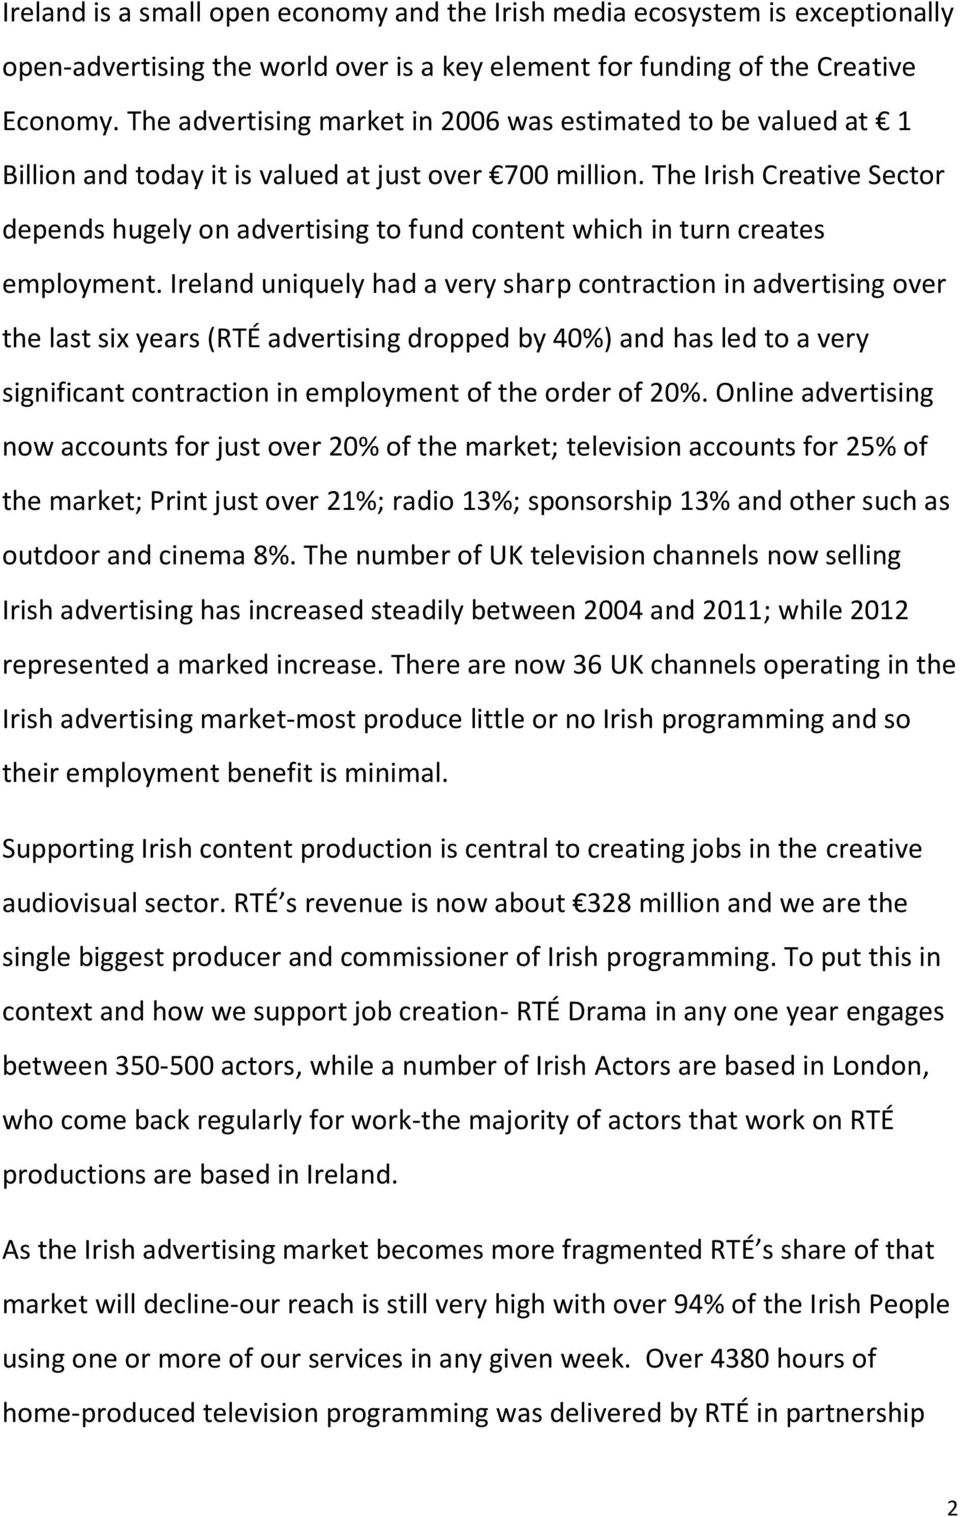 The Irish Creative Sector depends hugely on advertising to fund content which in turn creates employment.